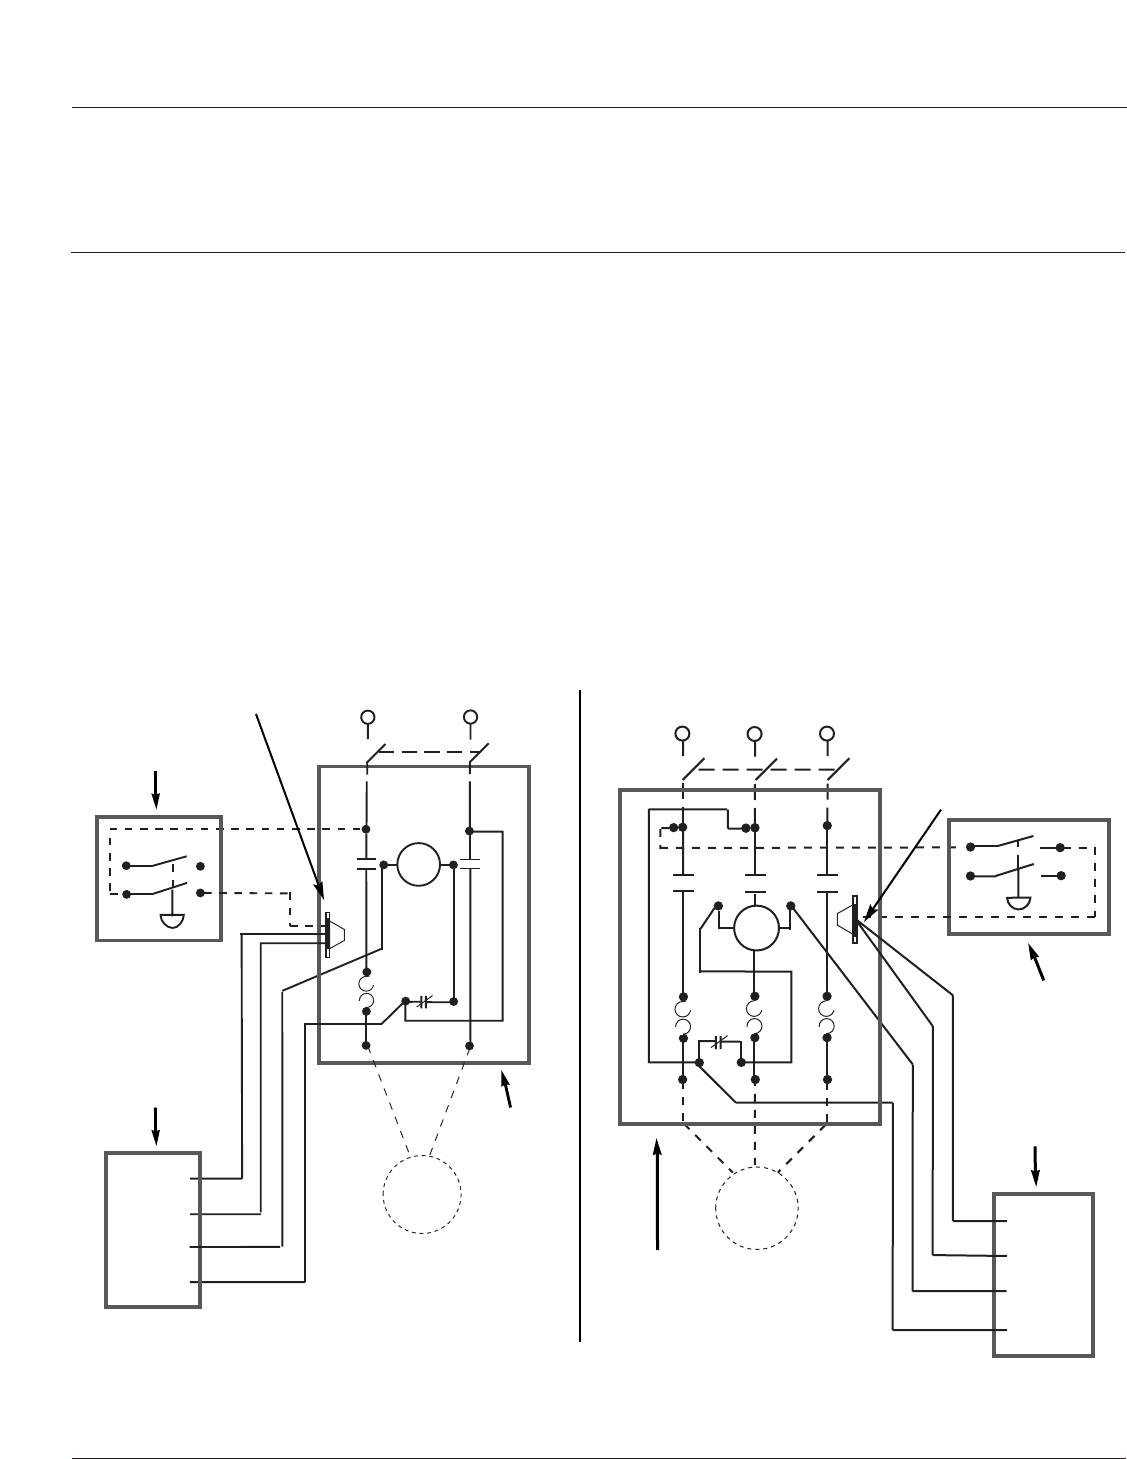 Wiring Diagram  30 Campbell Hausfeld Air Compressor Wiring